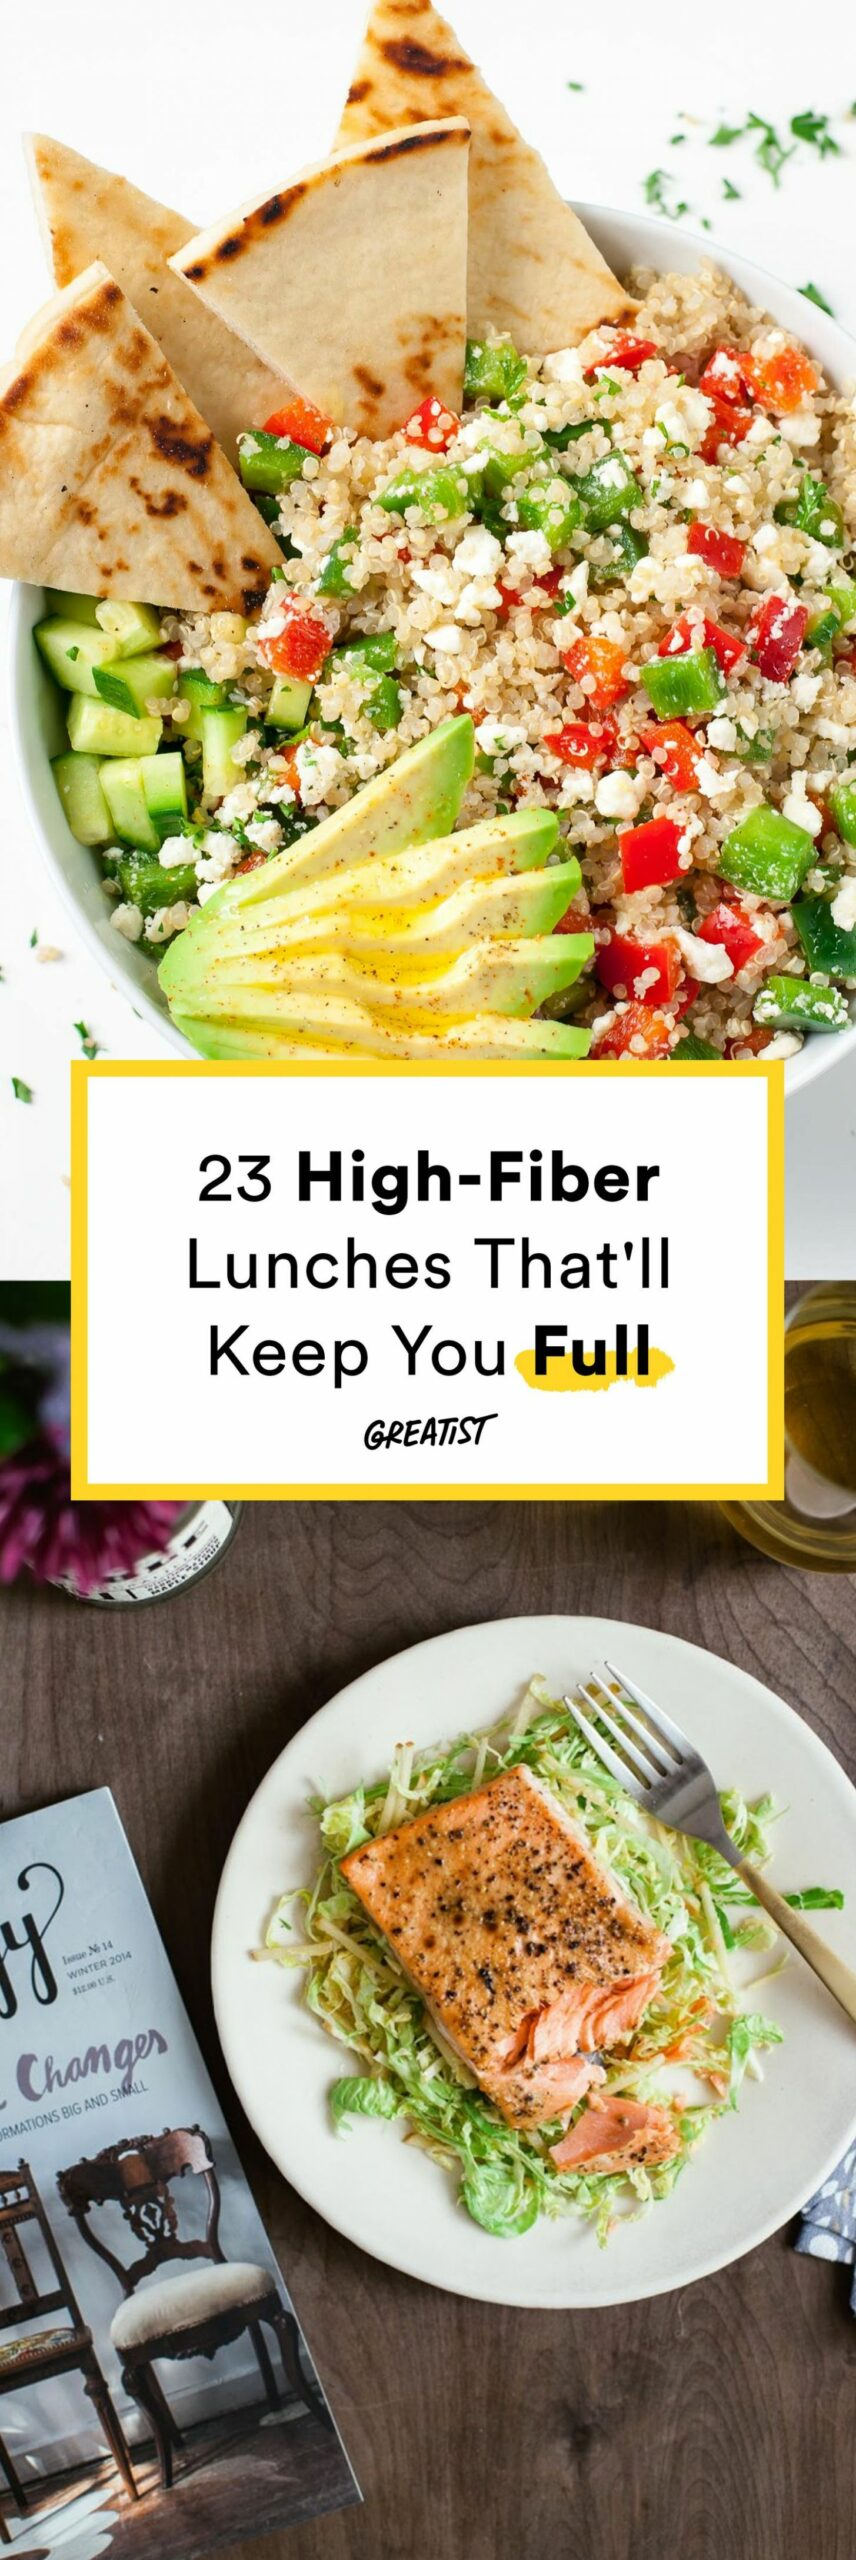 11 High-Fiber Lunches That'll Keep You Full 'Til Dinner | High ...